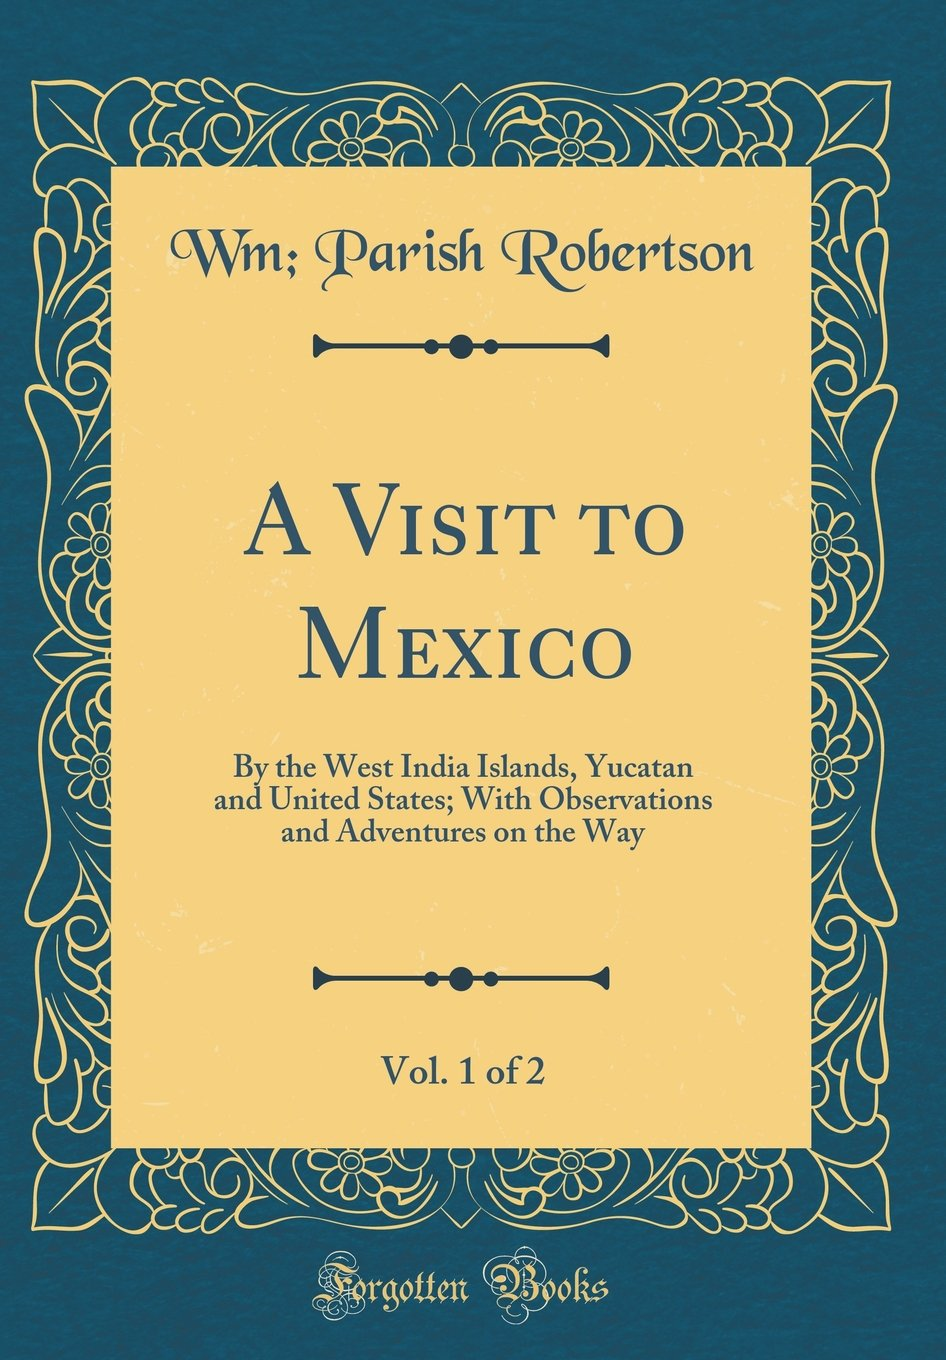 A Visit to Mexico, Vol. 1 of 2: By the West India Islands, Yucatan and United States; With Observations and Adventures on the Way (Classic Reprint)